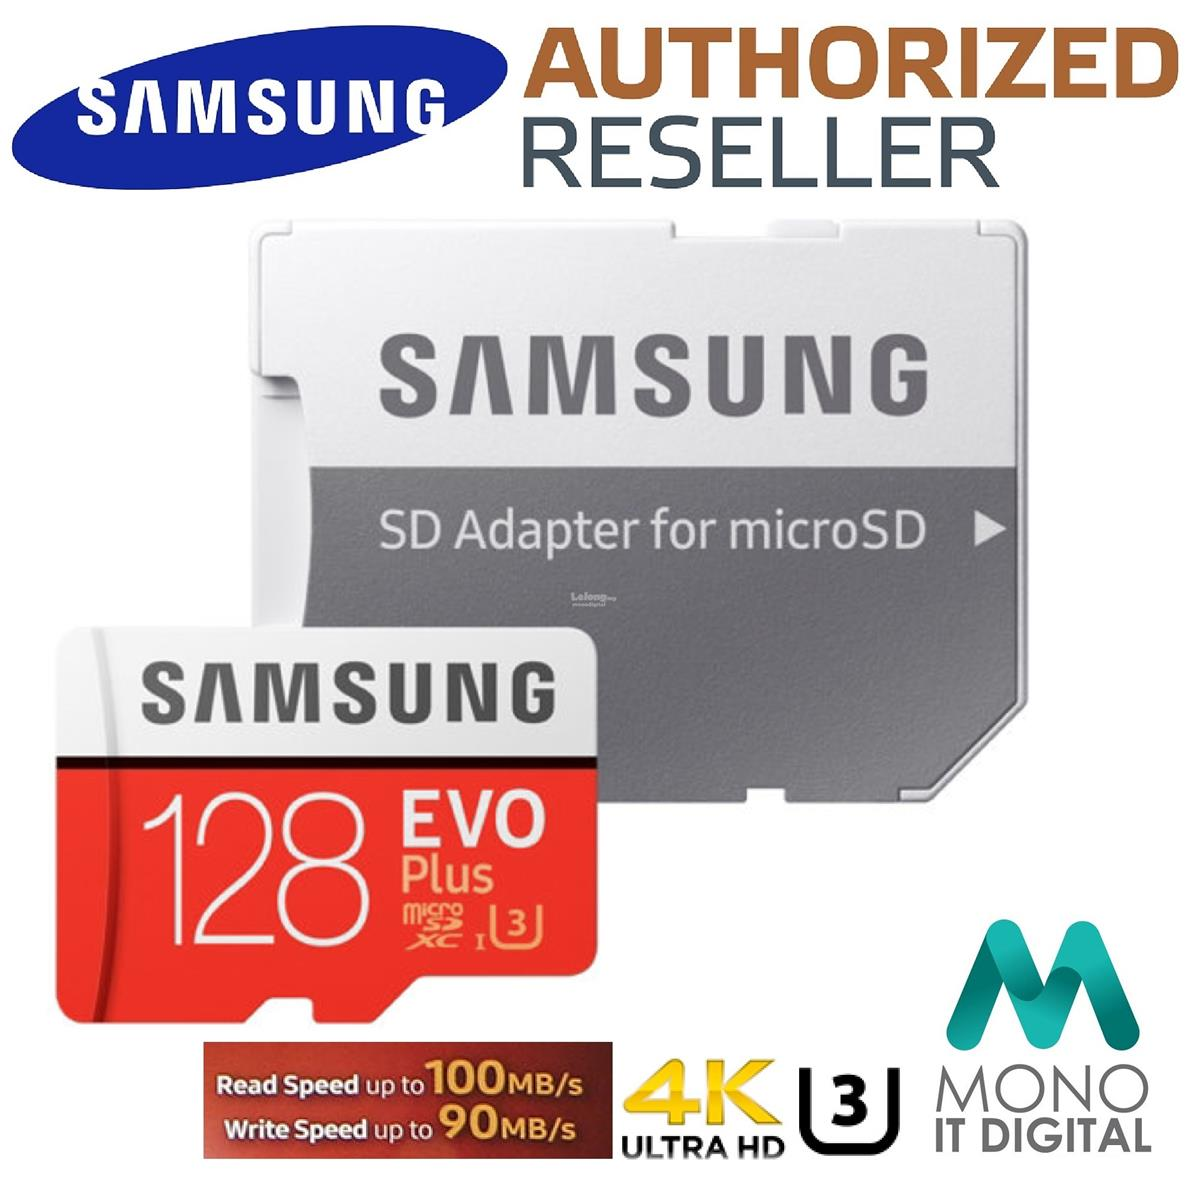 Micro Sd 32gb Price Harga In Malaysia Lelong Samsung 64 Gb Pro With Adapter Evo Plus 100mb S U3 4k Class 10 64gb